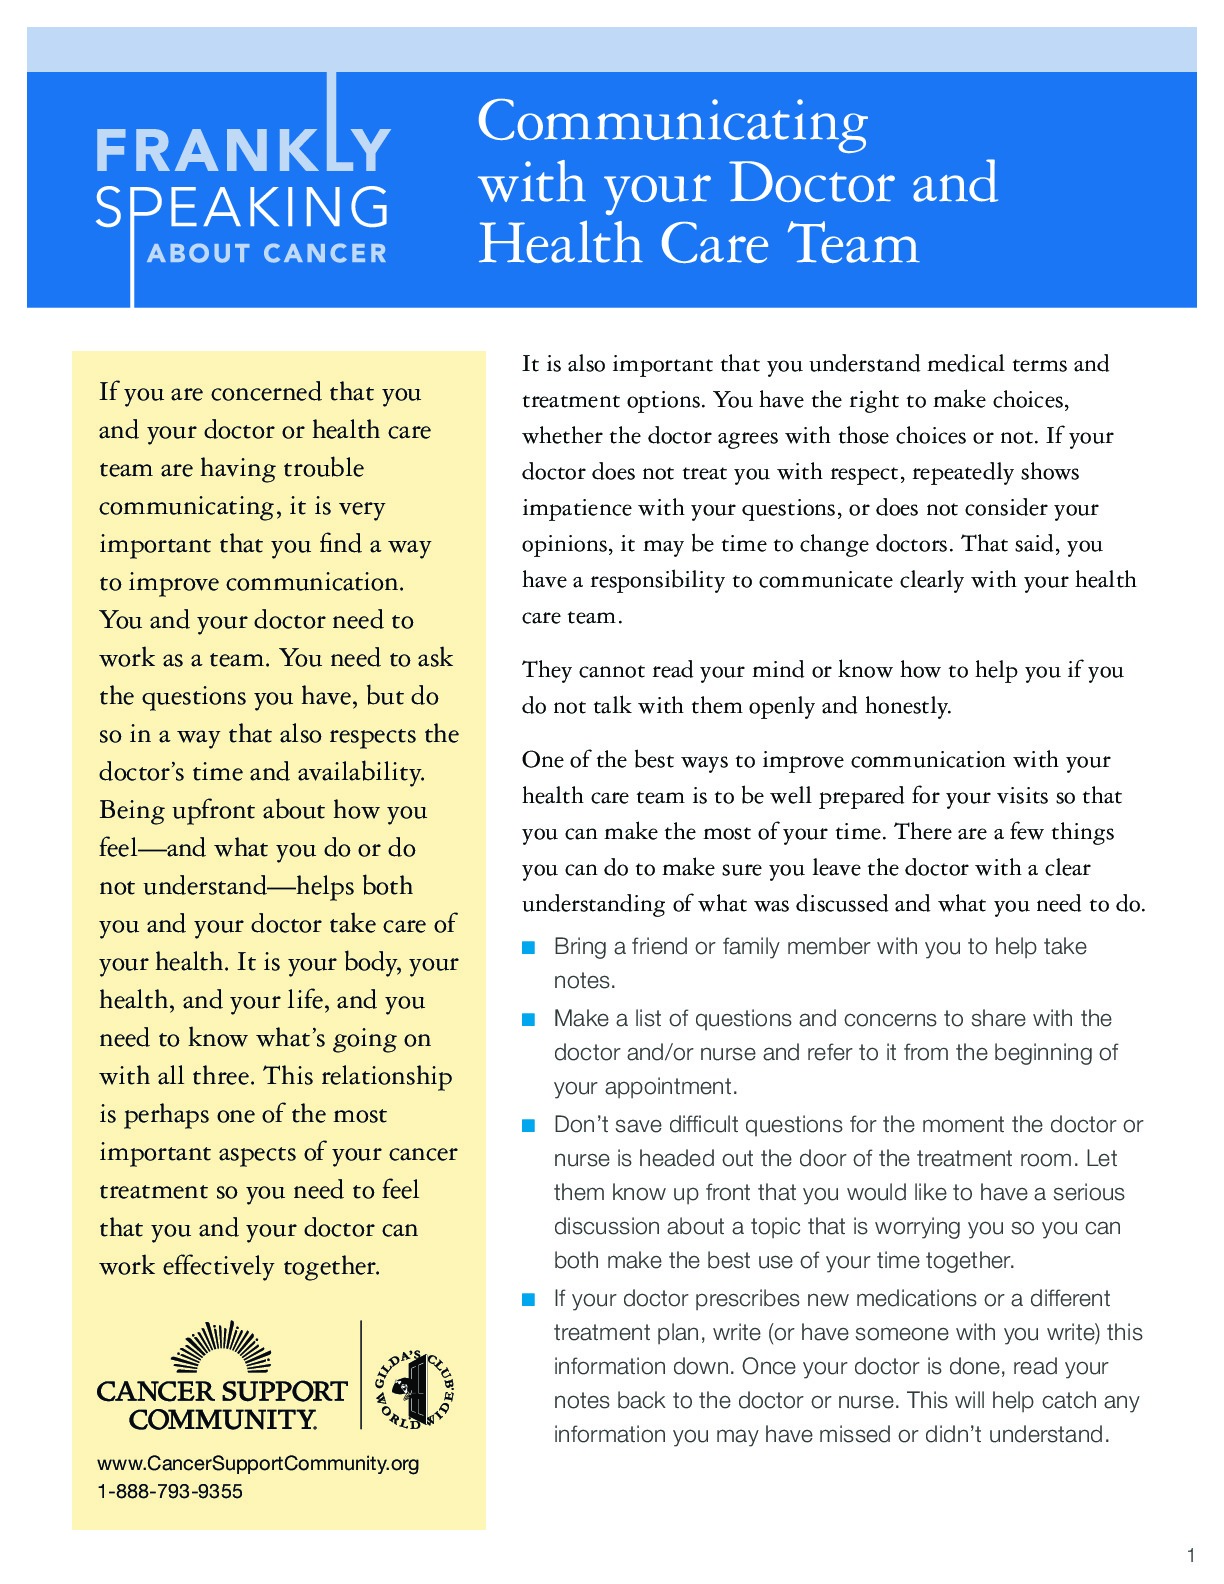 Communicating with Your Doctor and Health Care Team